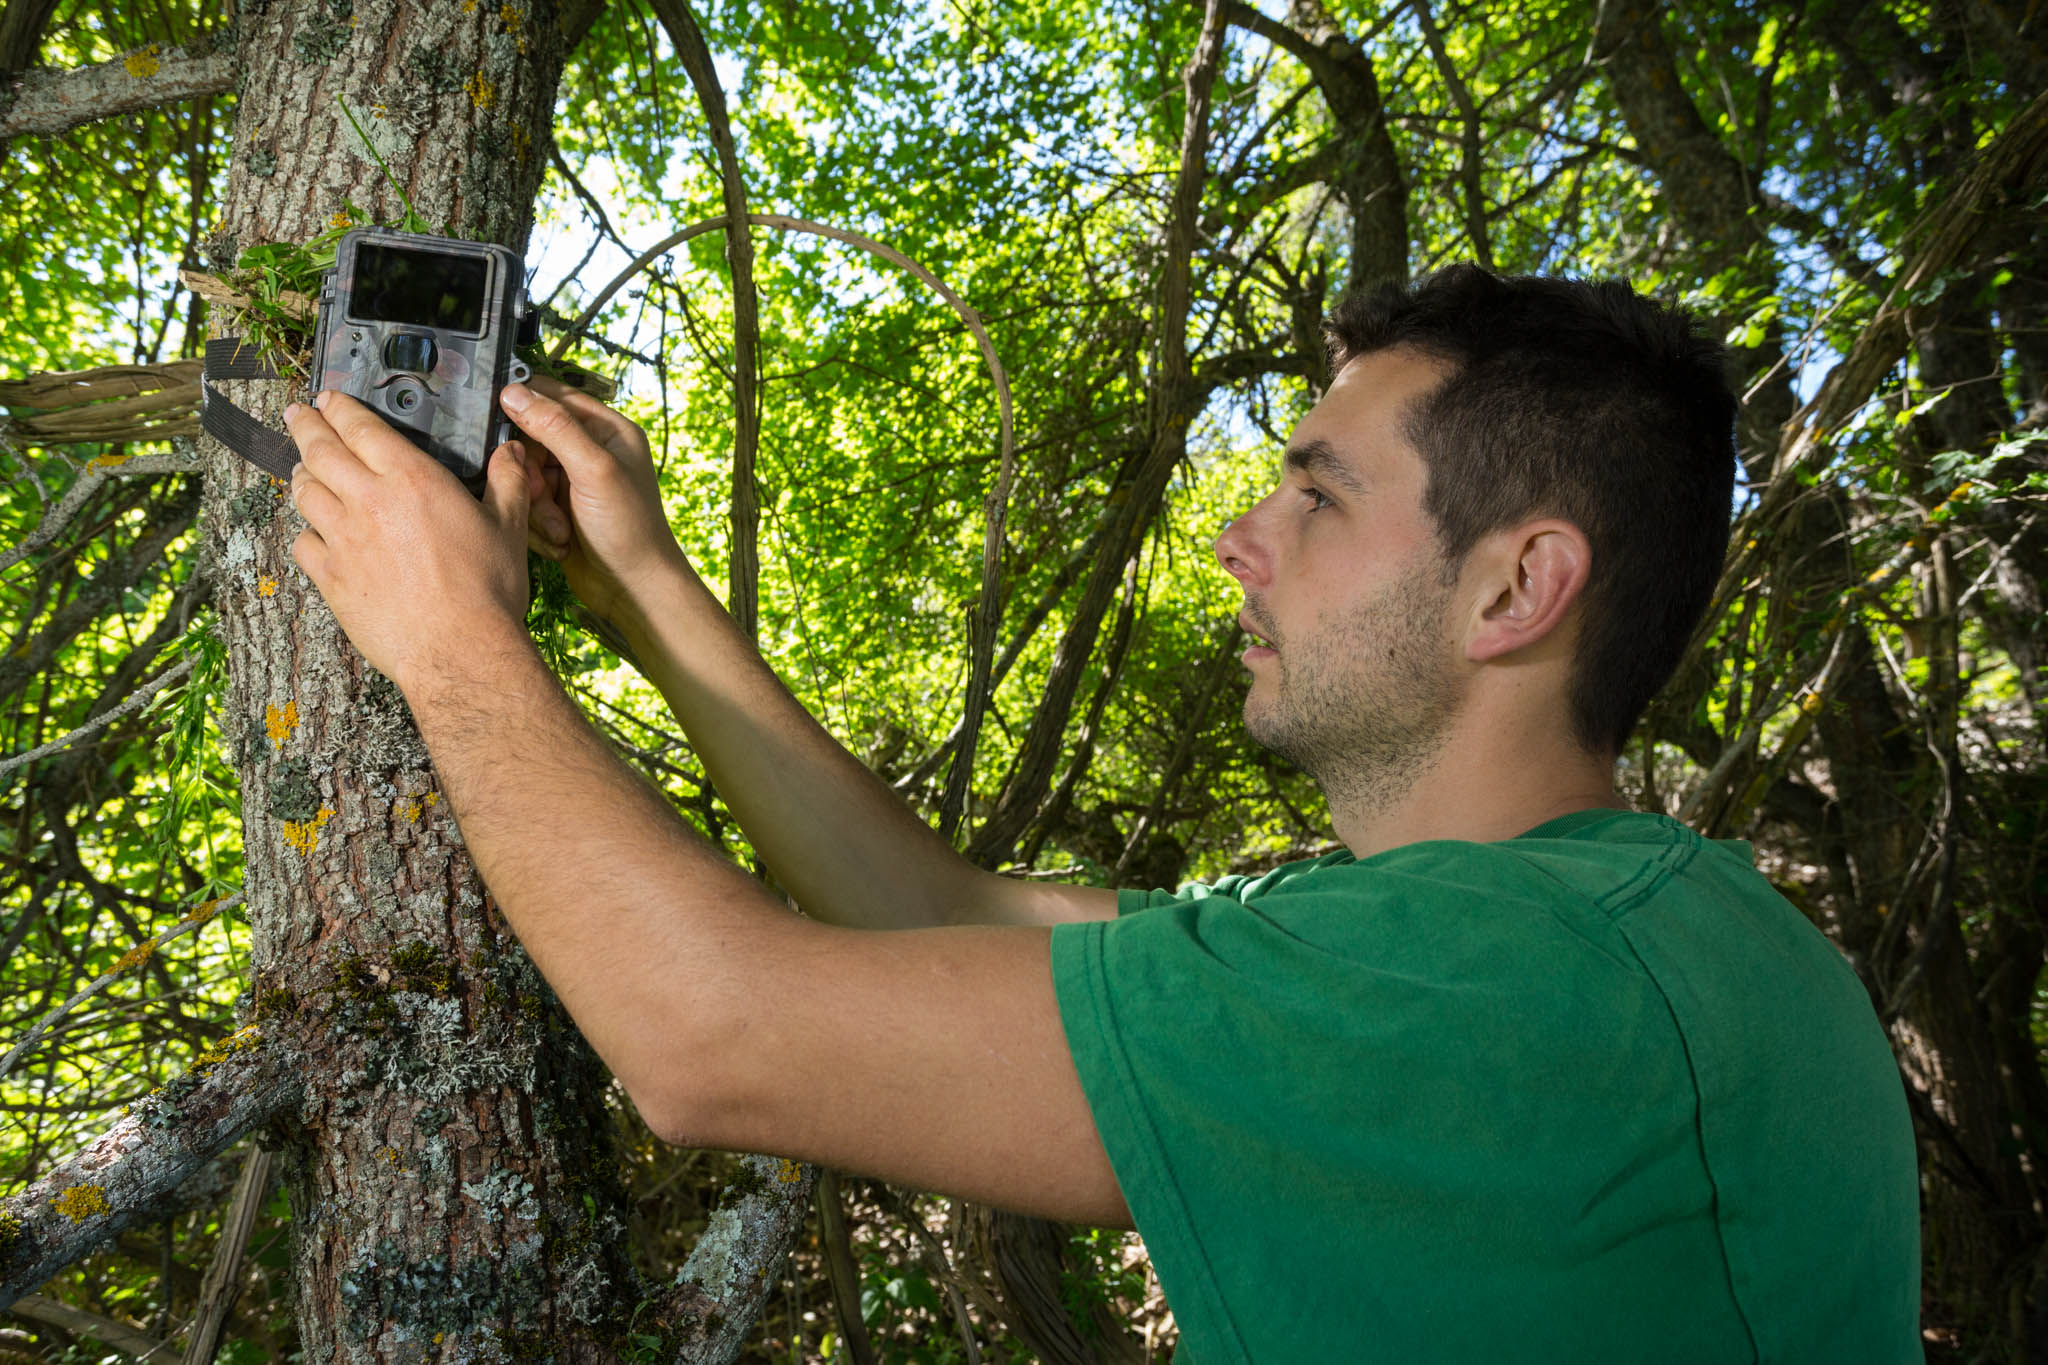 Bear advocate Matteo Simonicca learning how to set up a trail camera